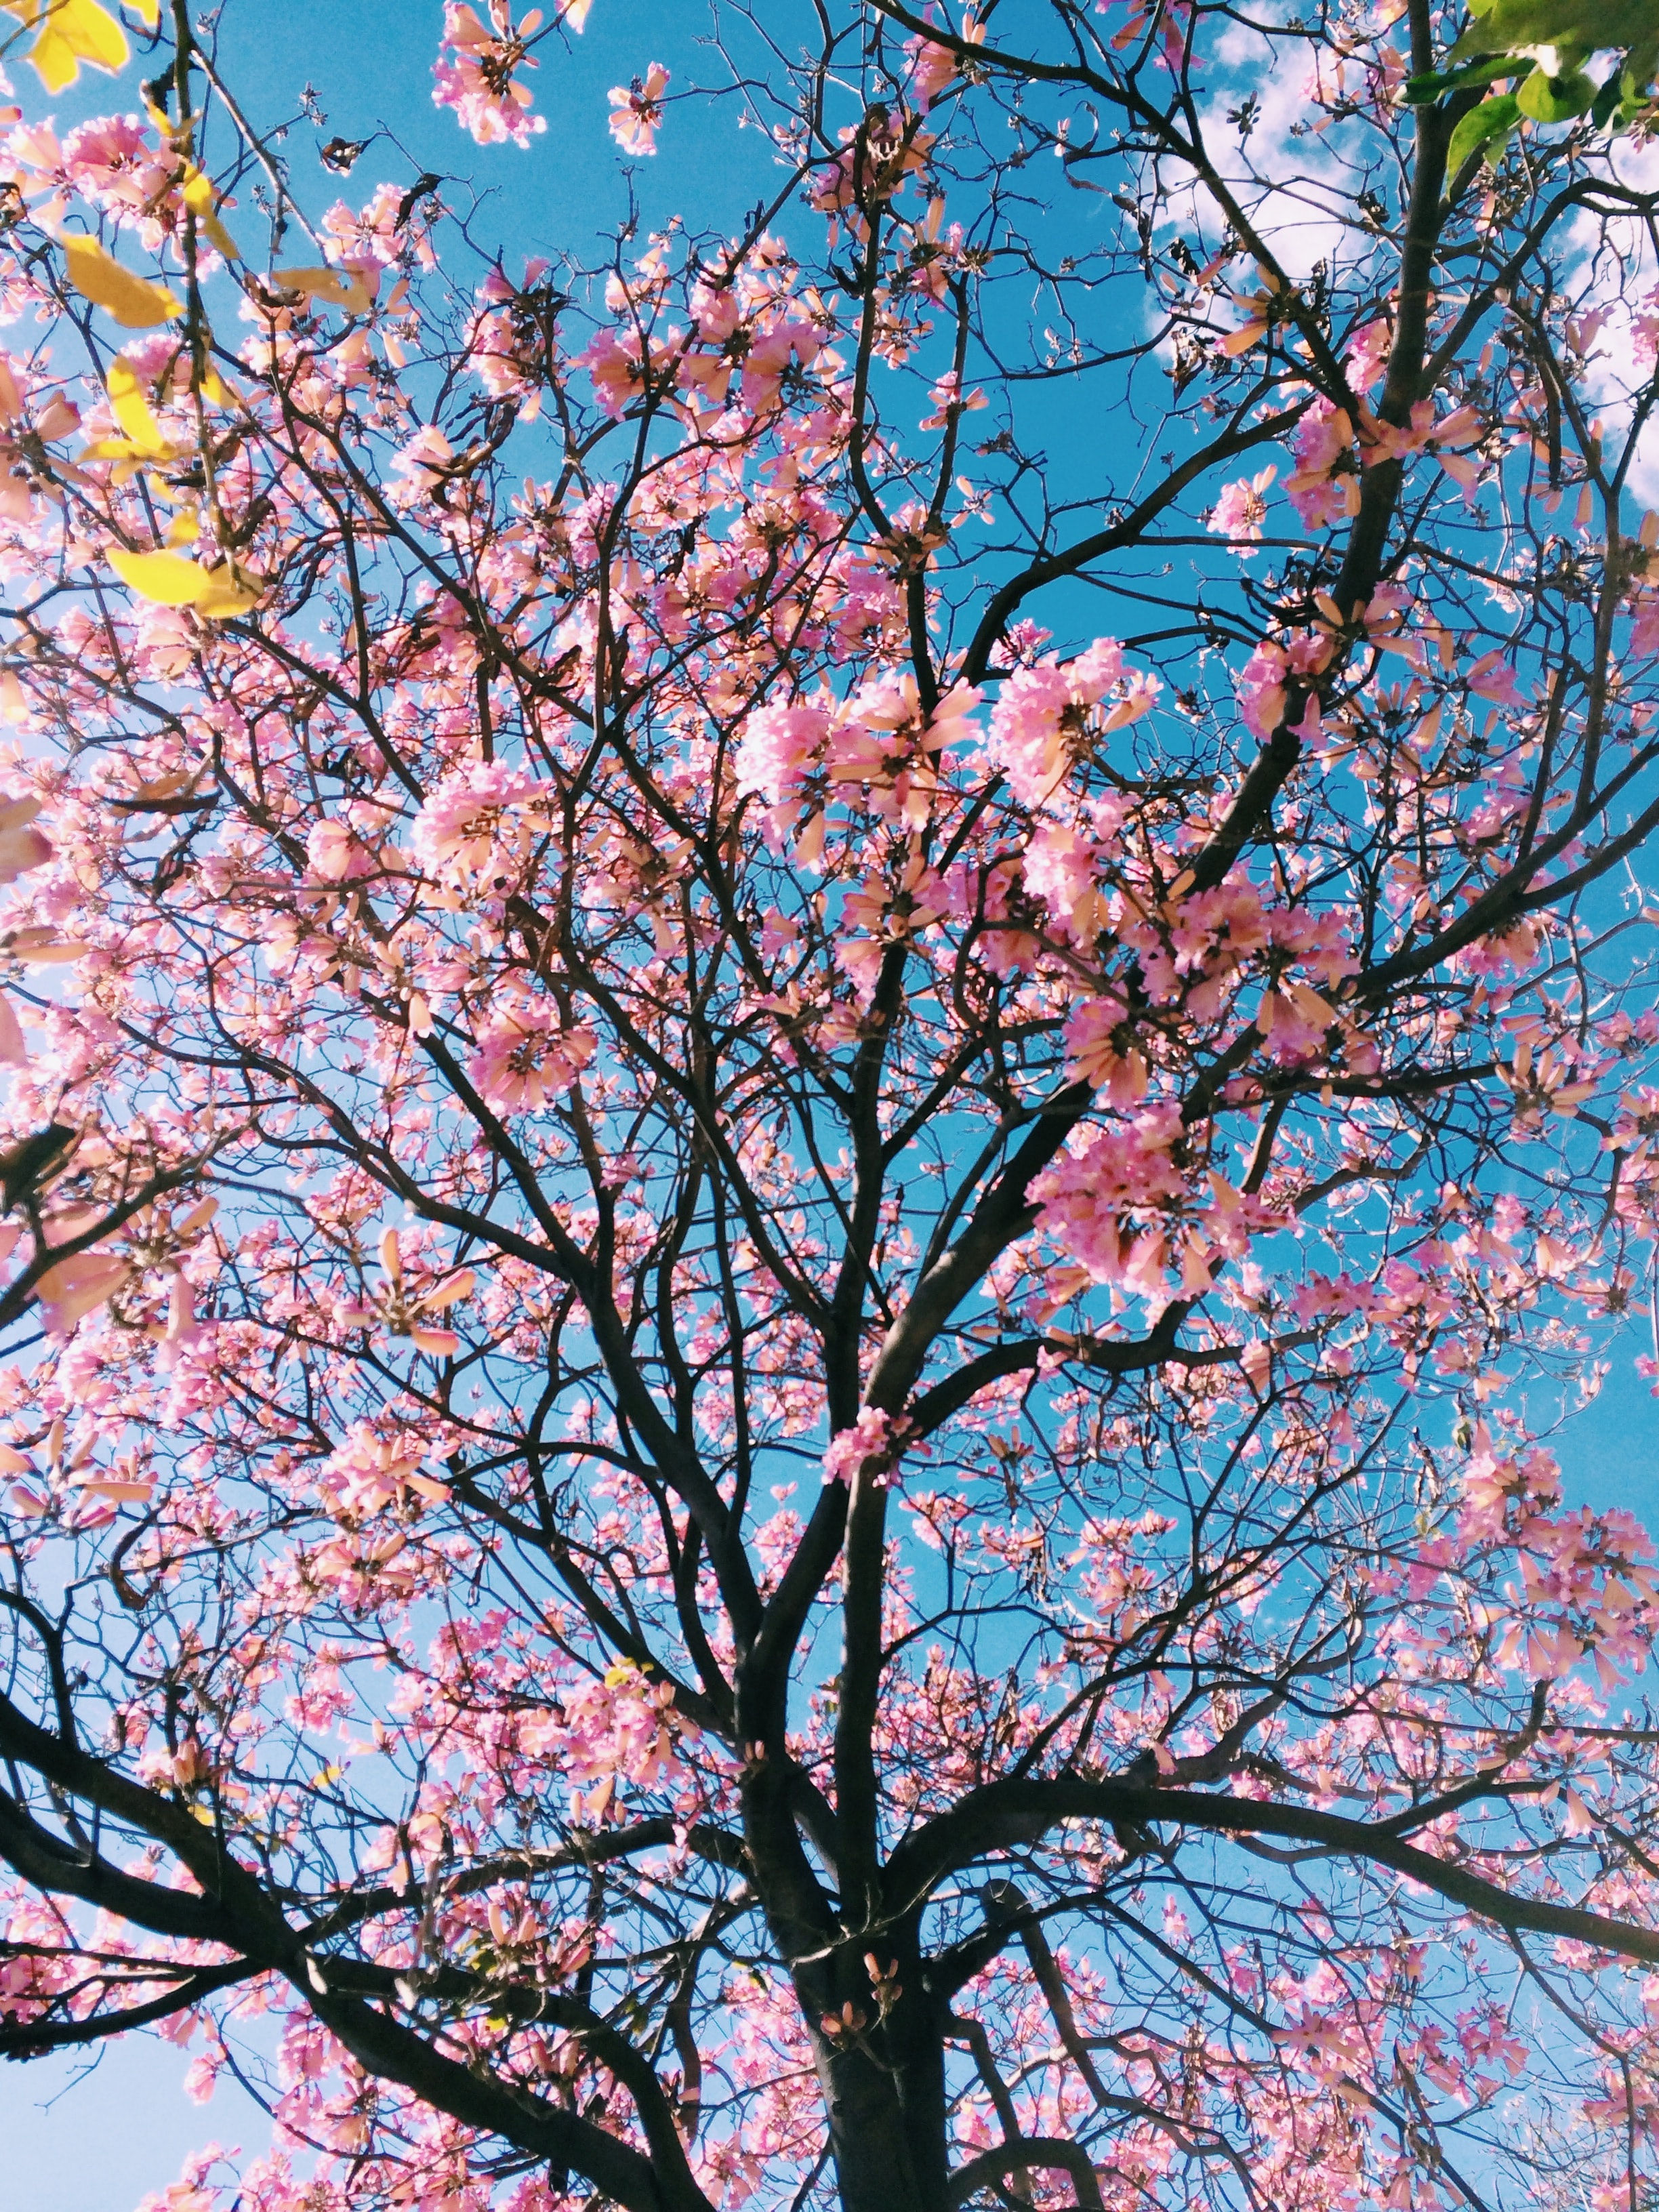 A low-angle shot of pink-flowered cherry blossom tree